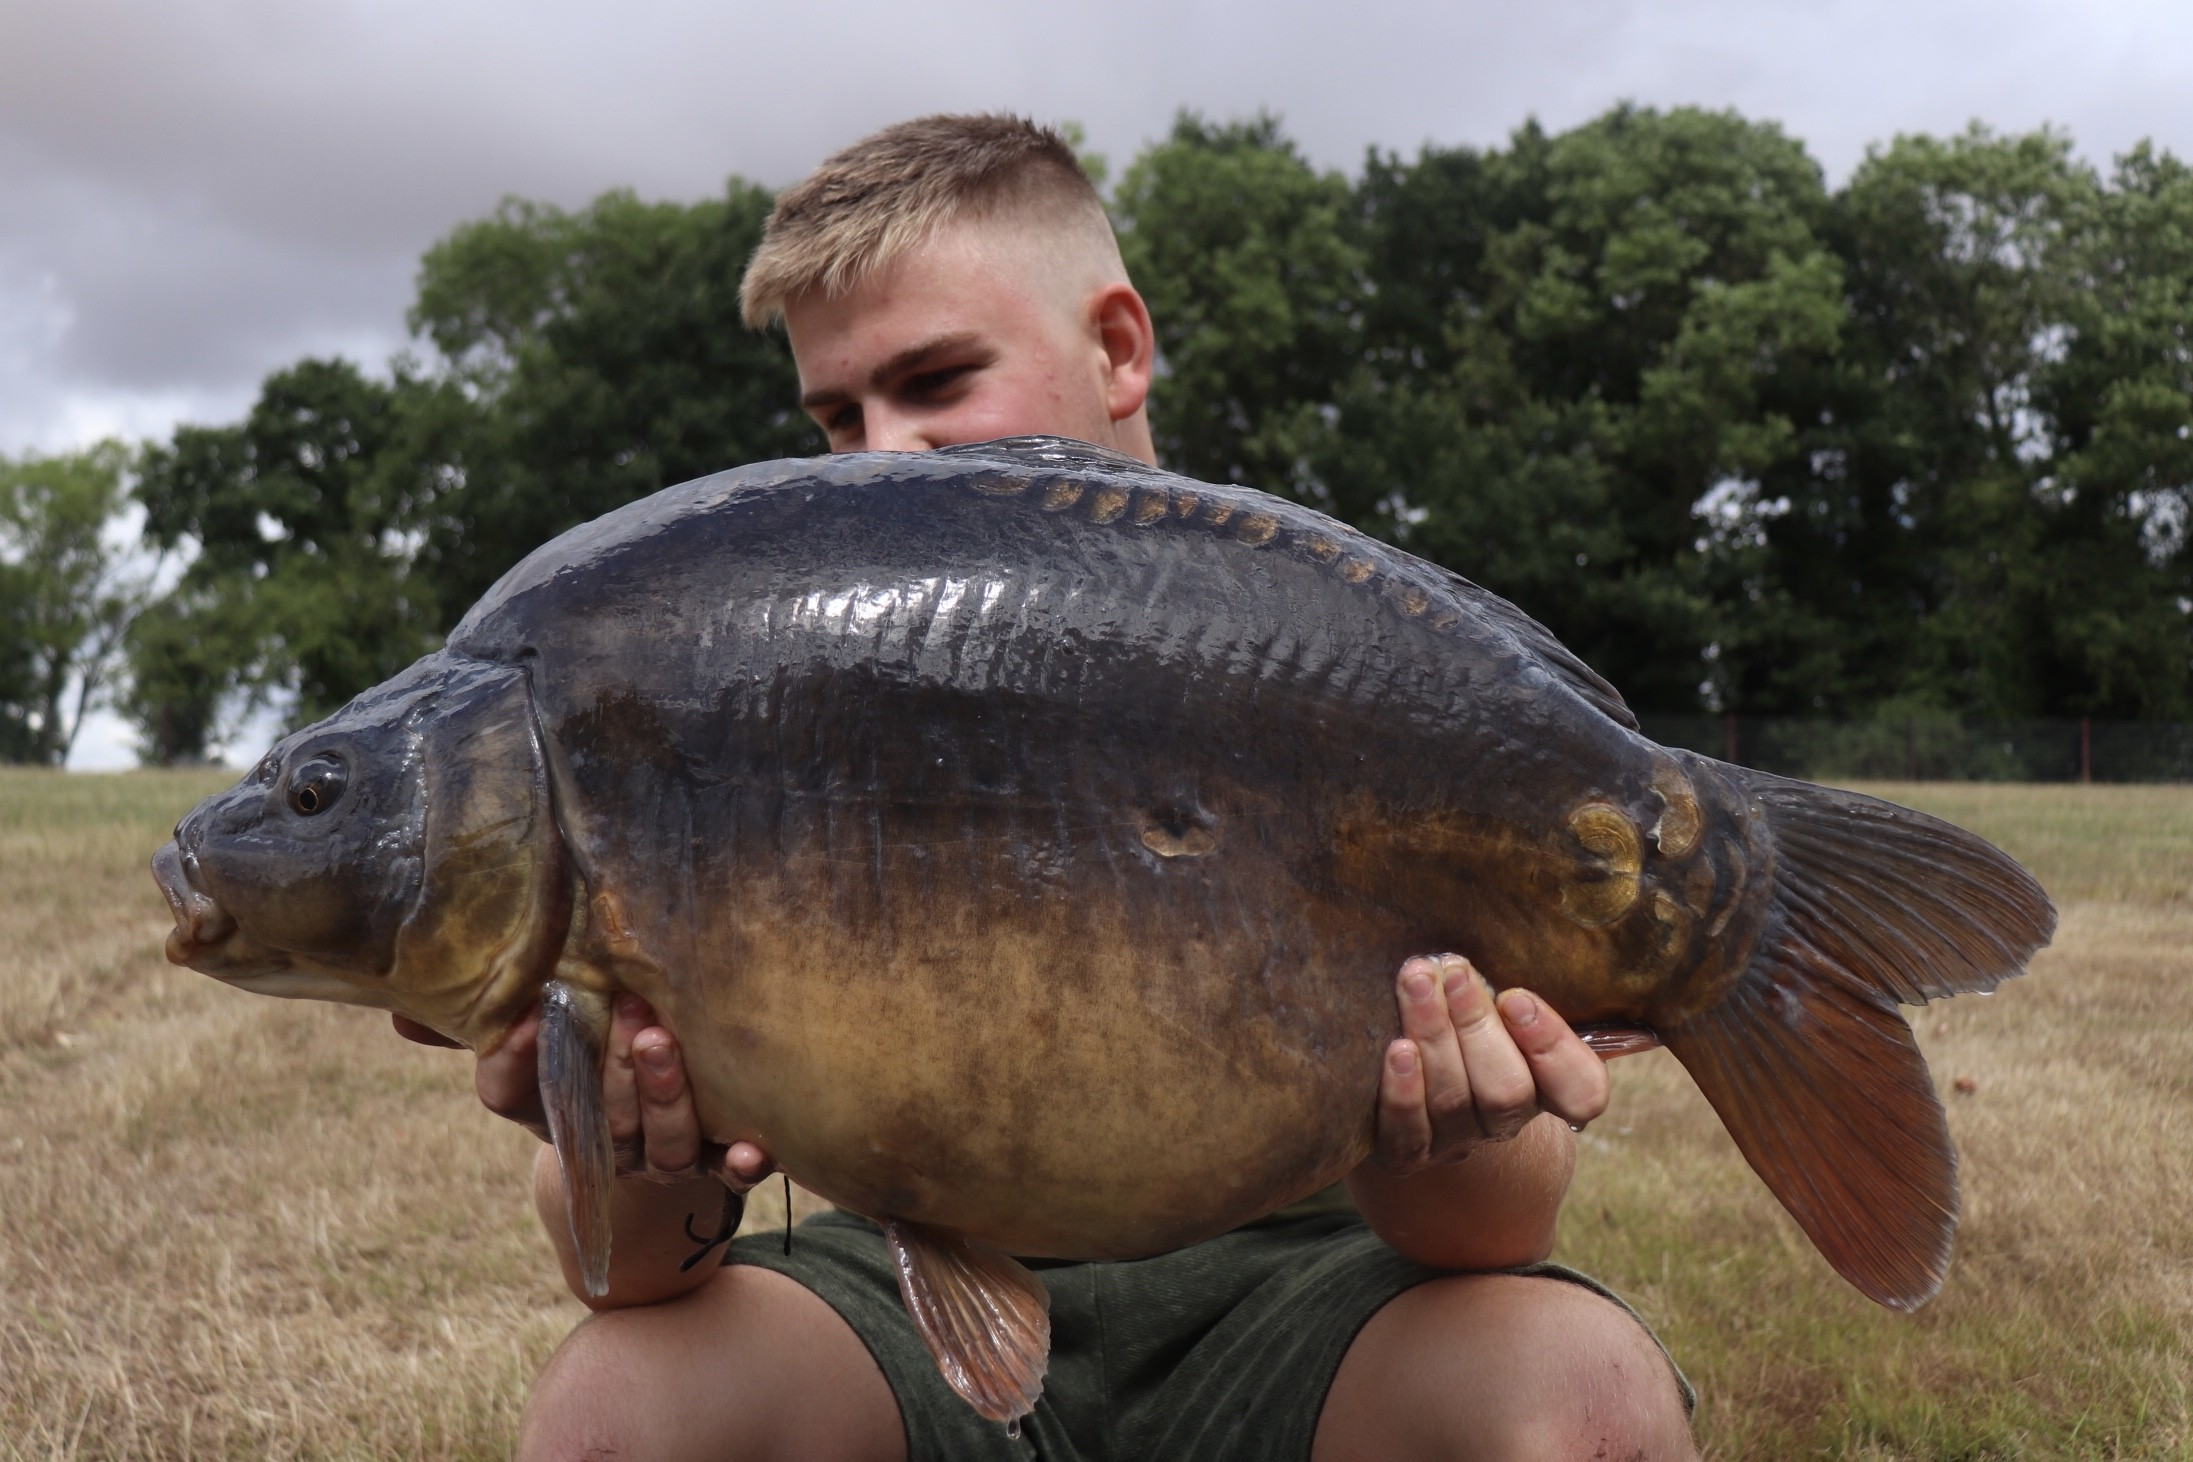 24lb 04oz  caught on